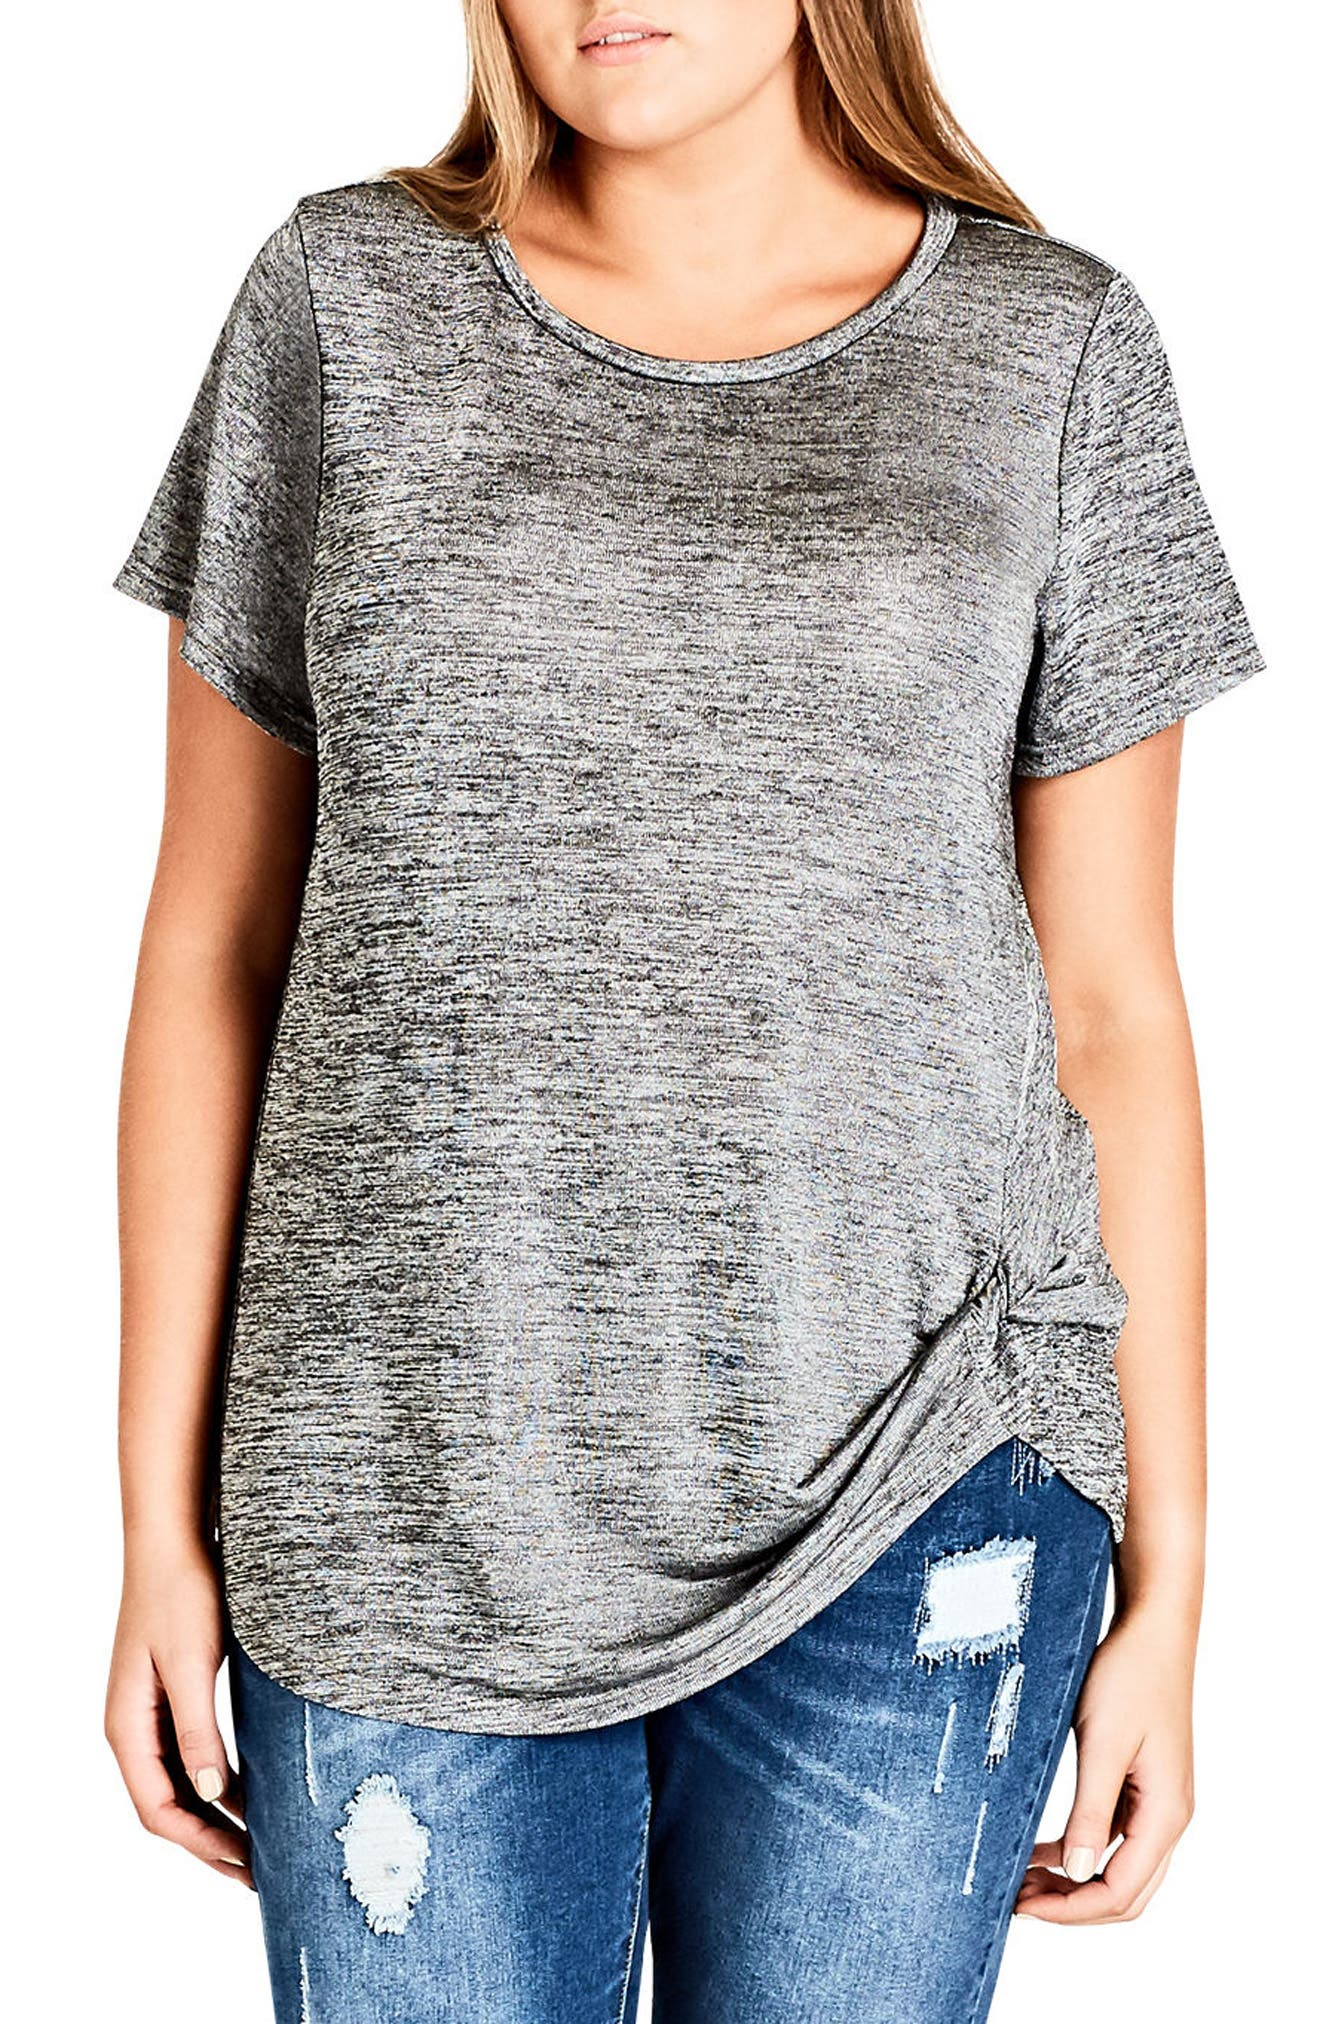 Main Image - City Chic In Knots Top (Plus Size)